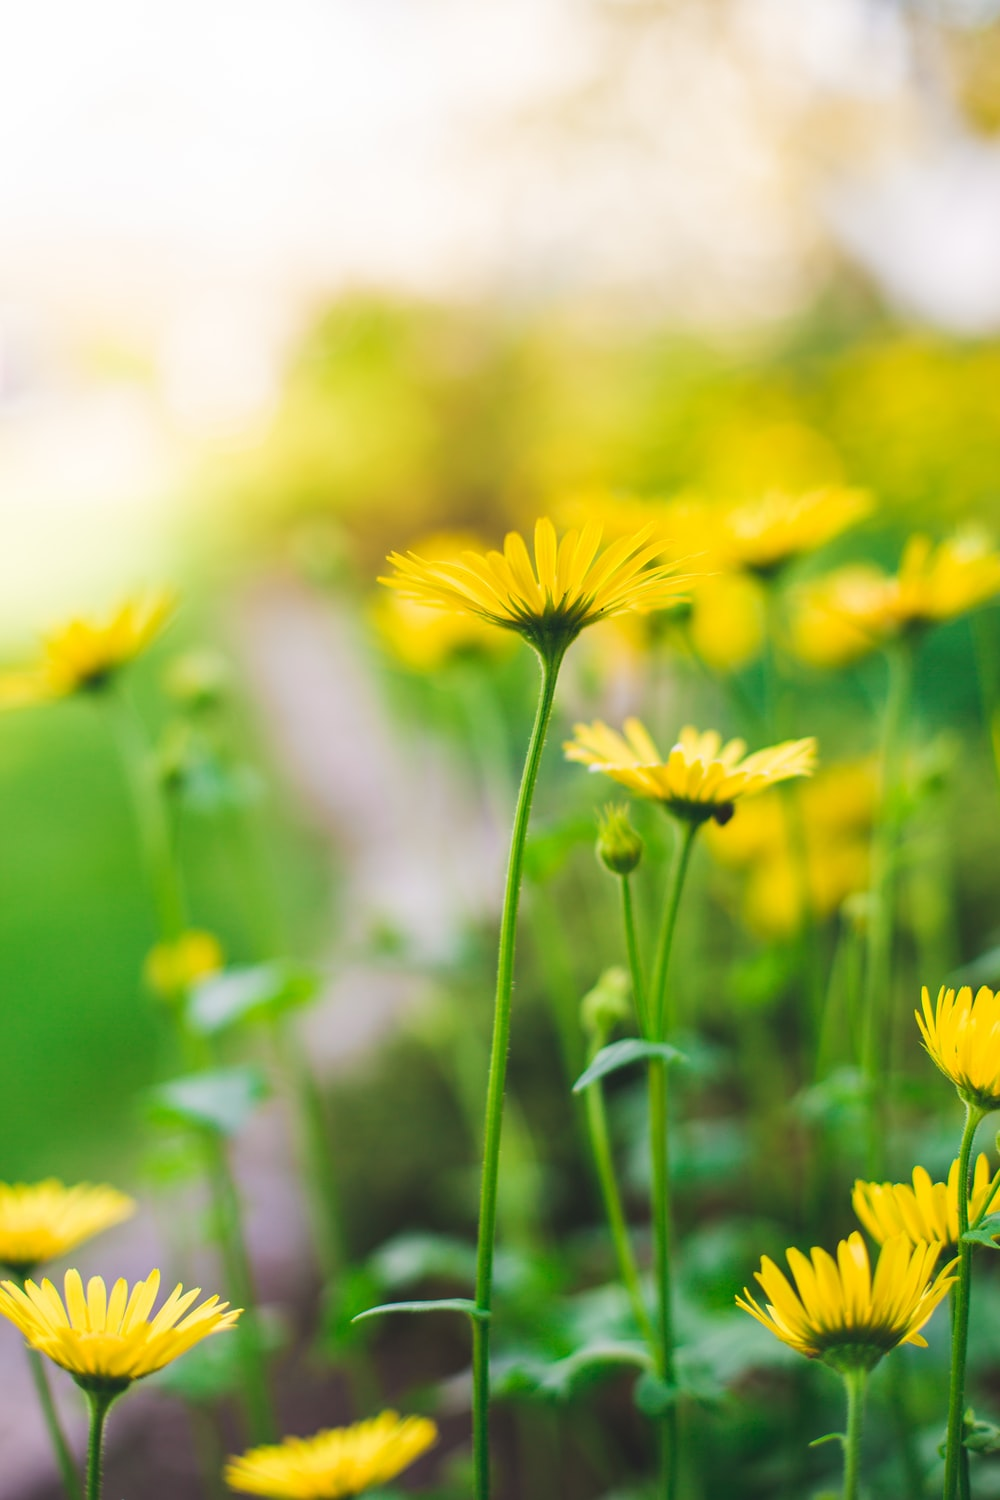 tilt shift photography of yellow daisies